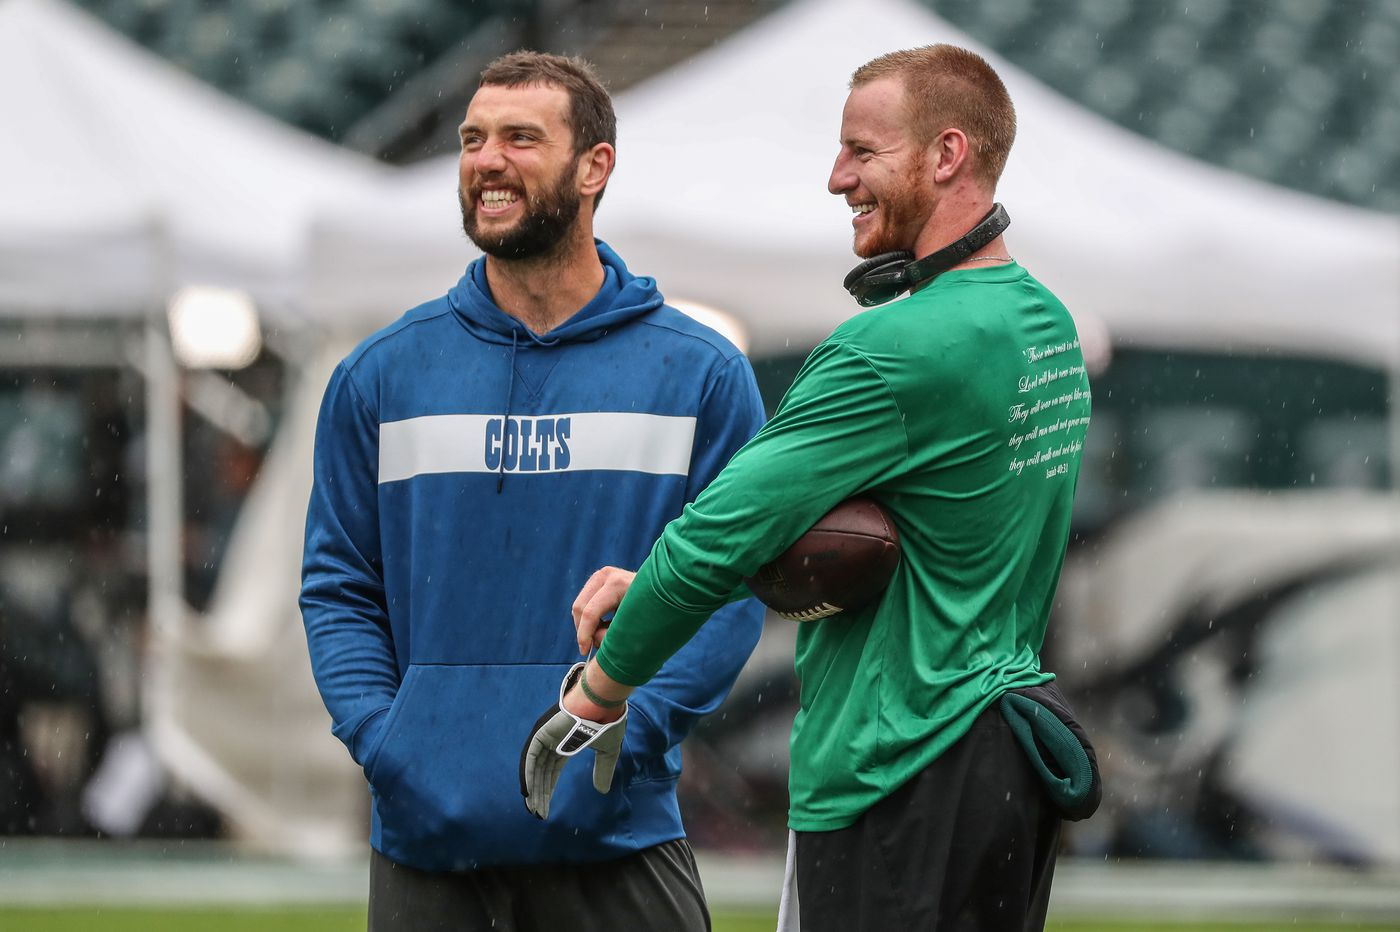 Carson Wentz could follow Andrew Luck one day into early retirement | Marcus Hayes